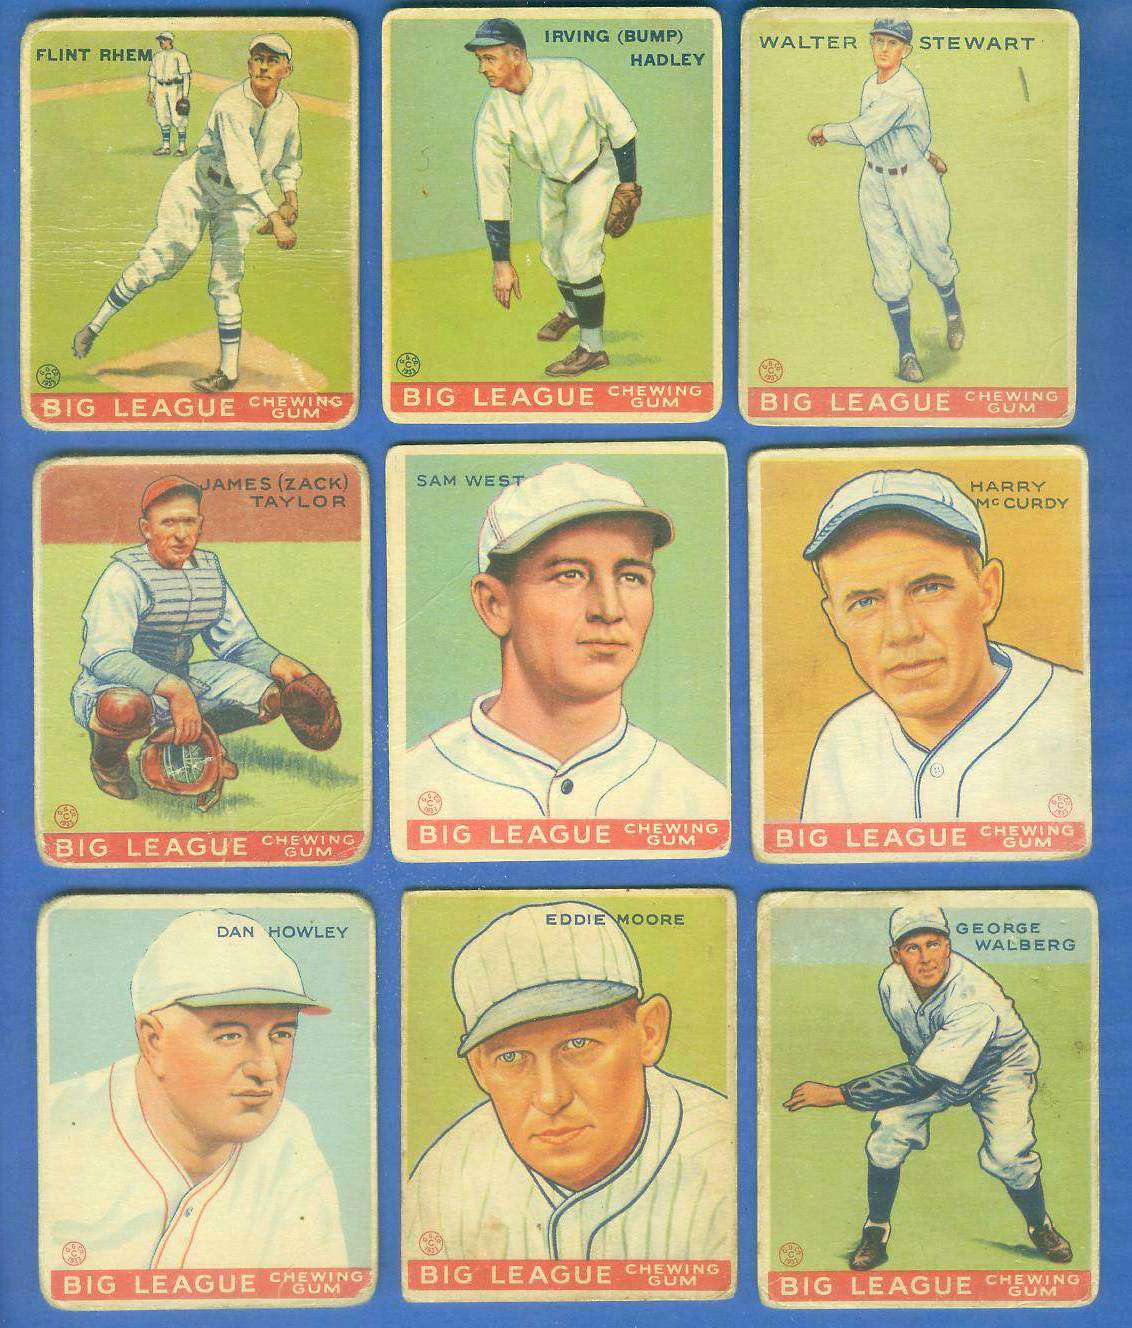 1933 Goudey #146 Walter Stewart PIT Baseball cards value